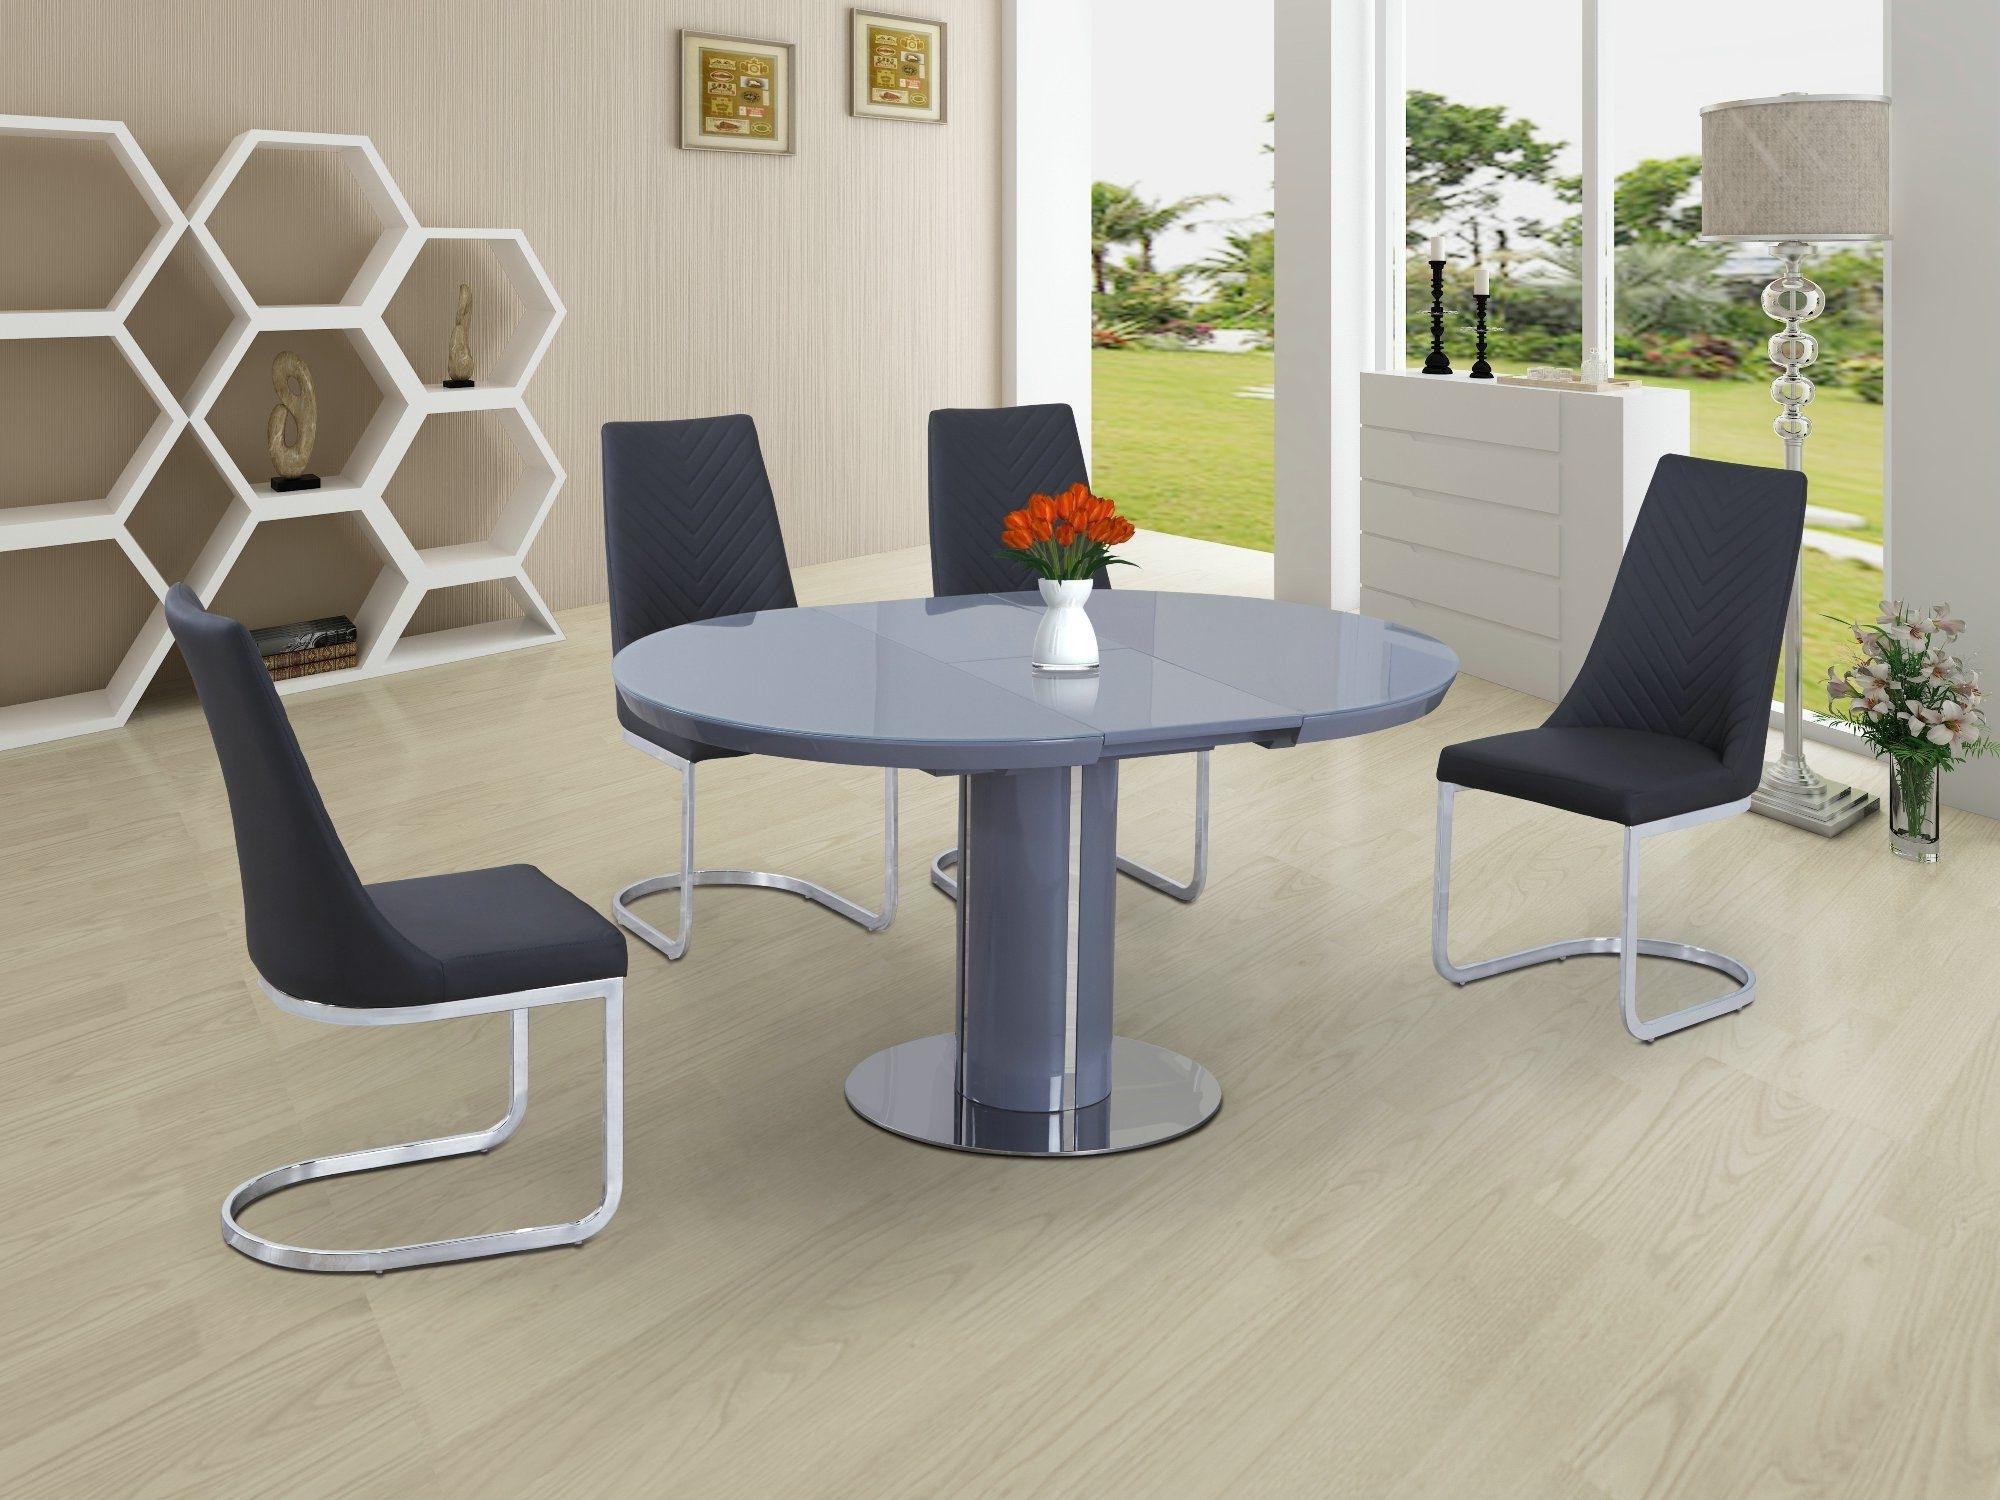 Buy Small Round Extendable Dining Table Today With Regard To Current Small Round Extending Dining Tables (View 4 of 25)